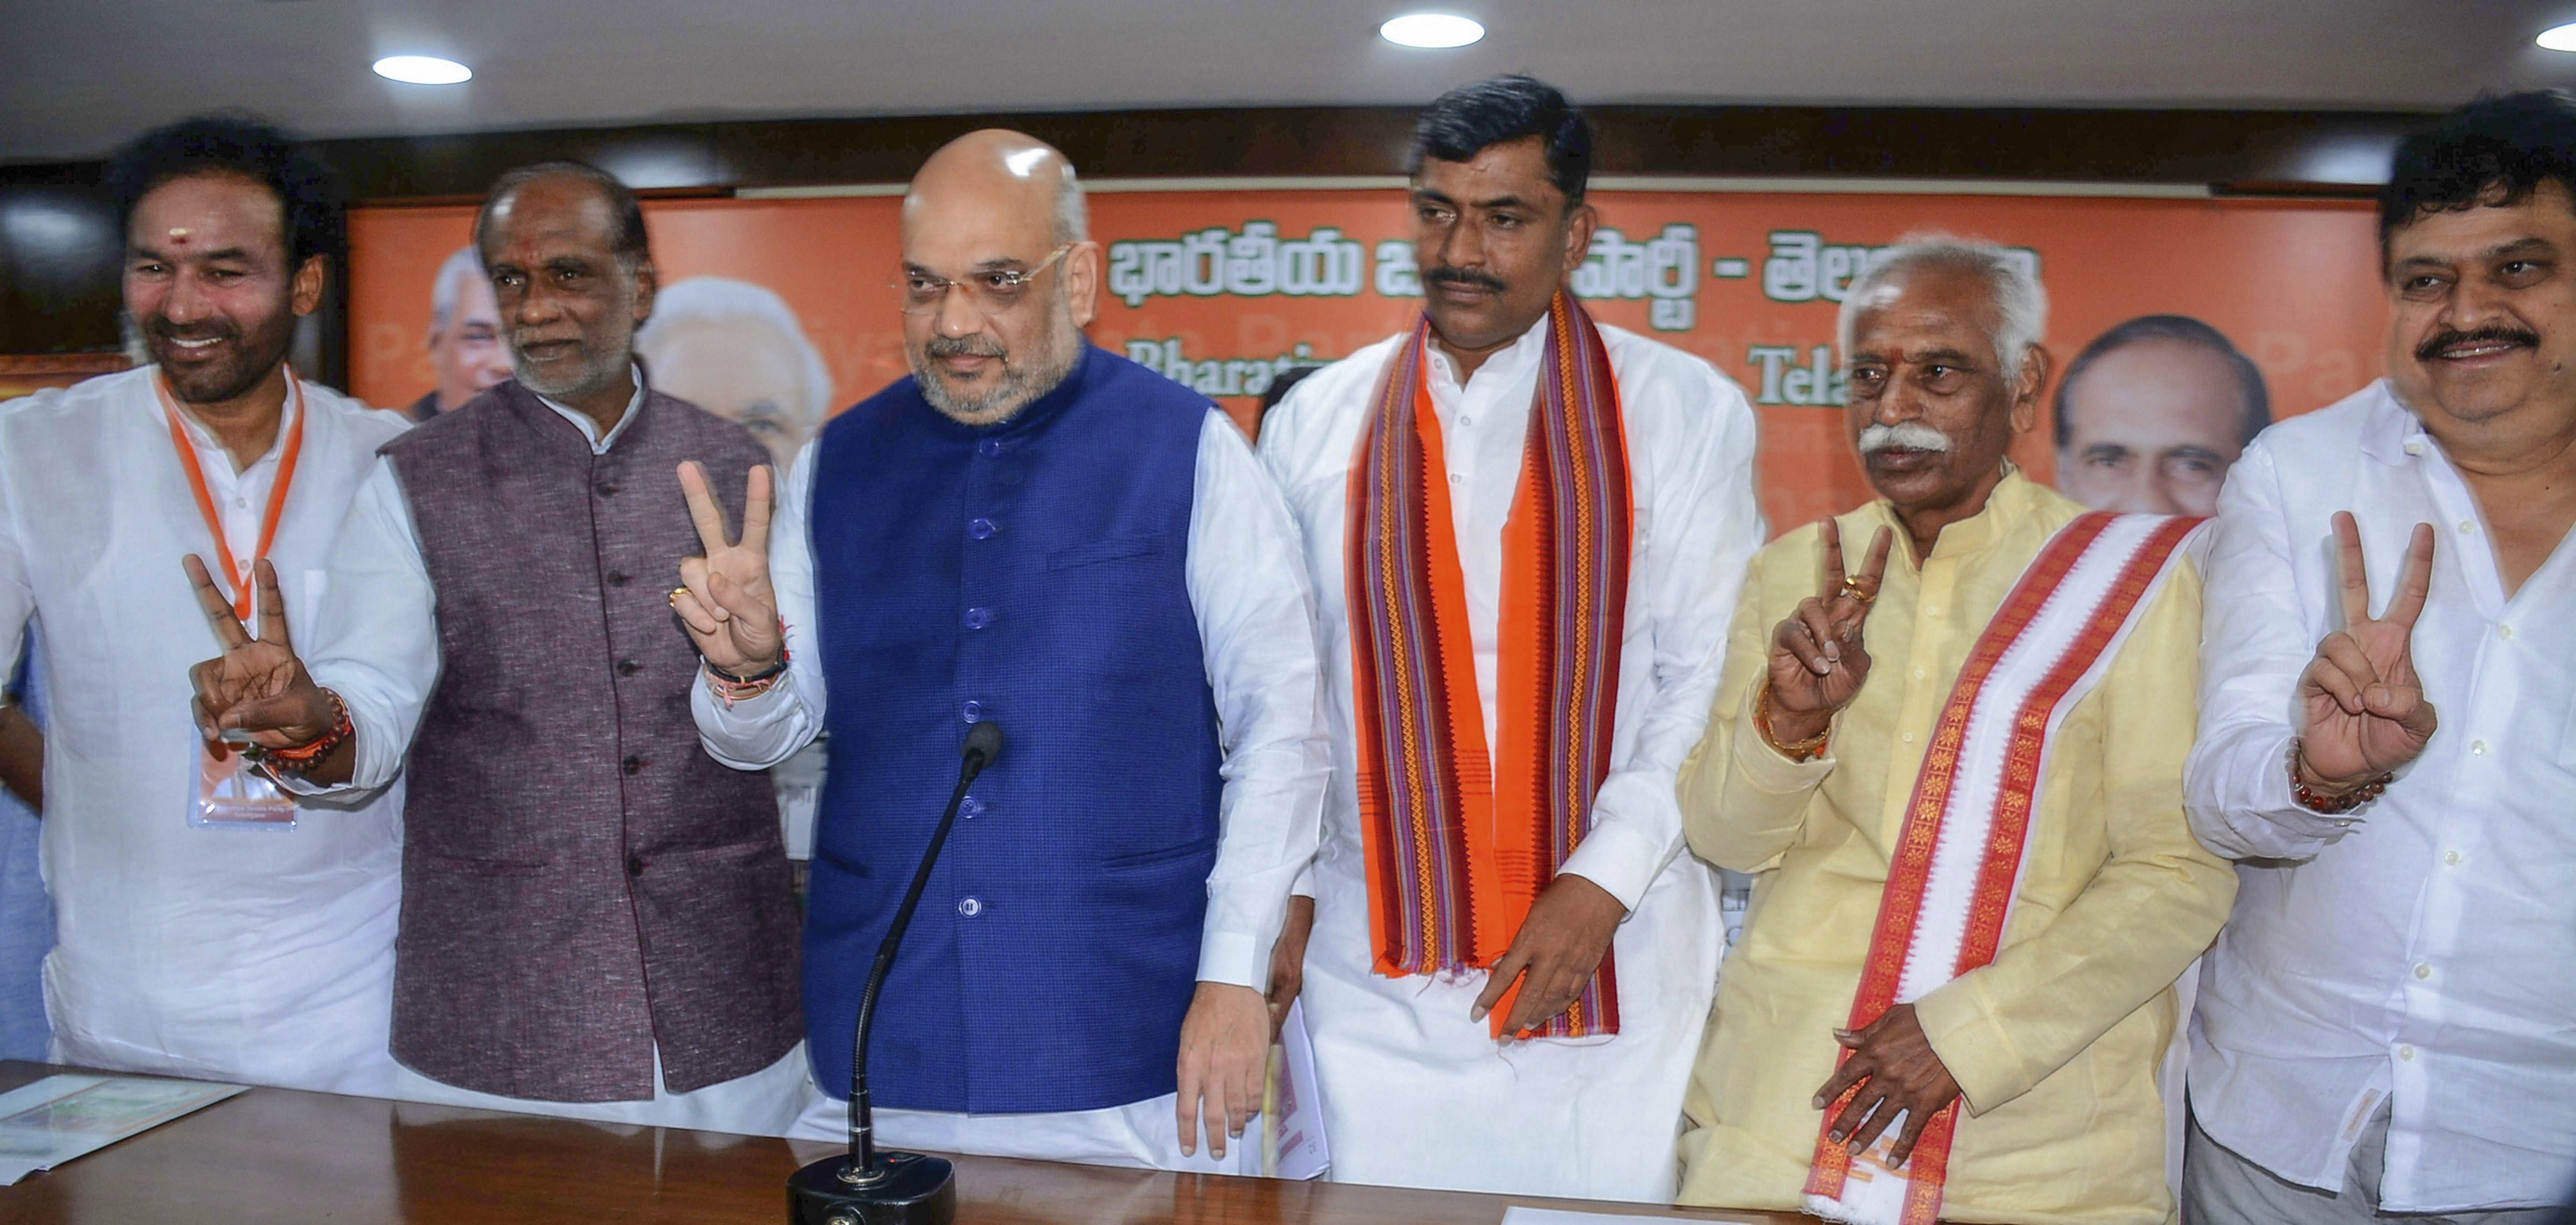 BJP National President Amit Shah with Telangana Party President DR Lakshman and others pose for photos after a press conference, in Hyderabad - PTI